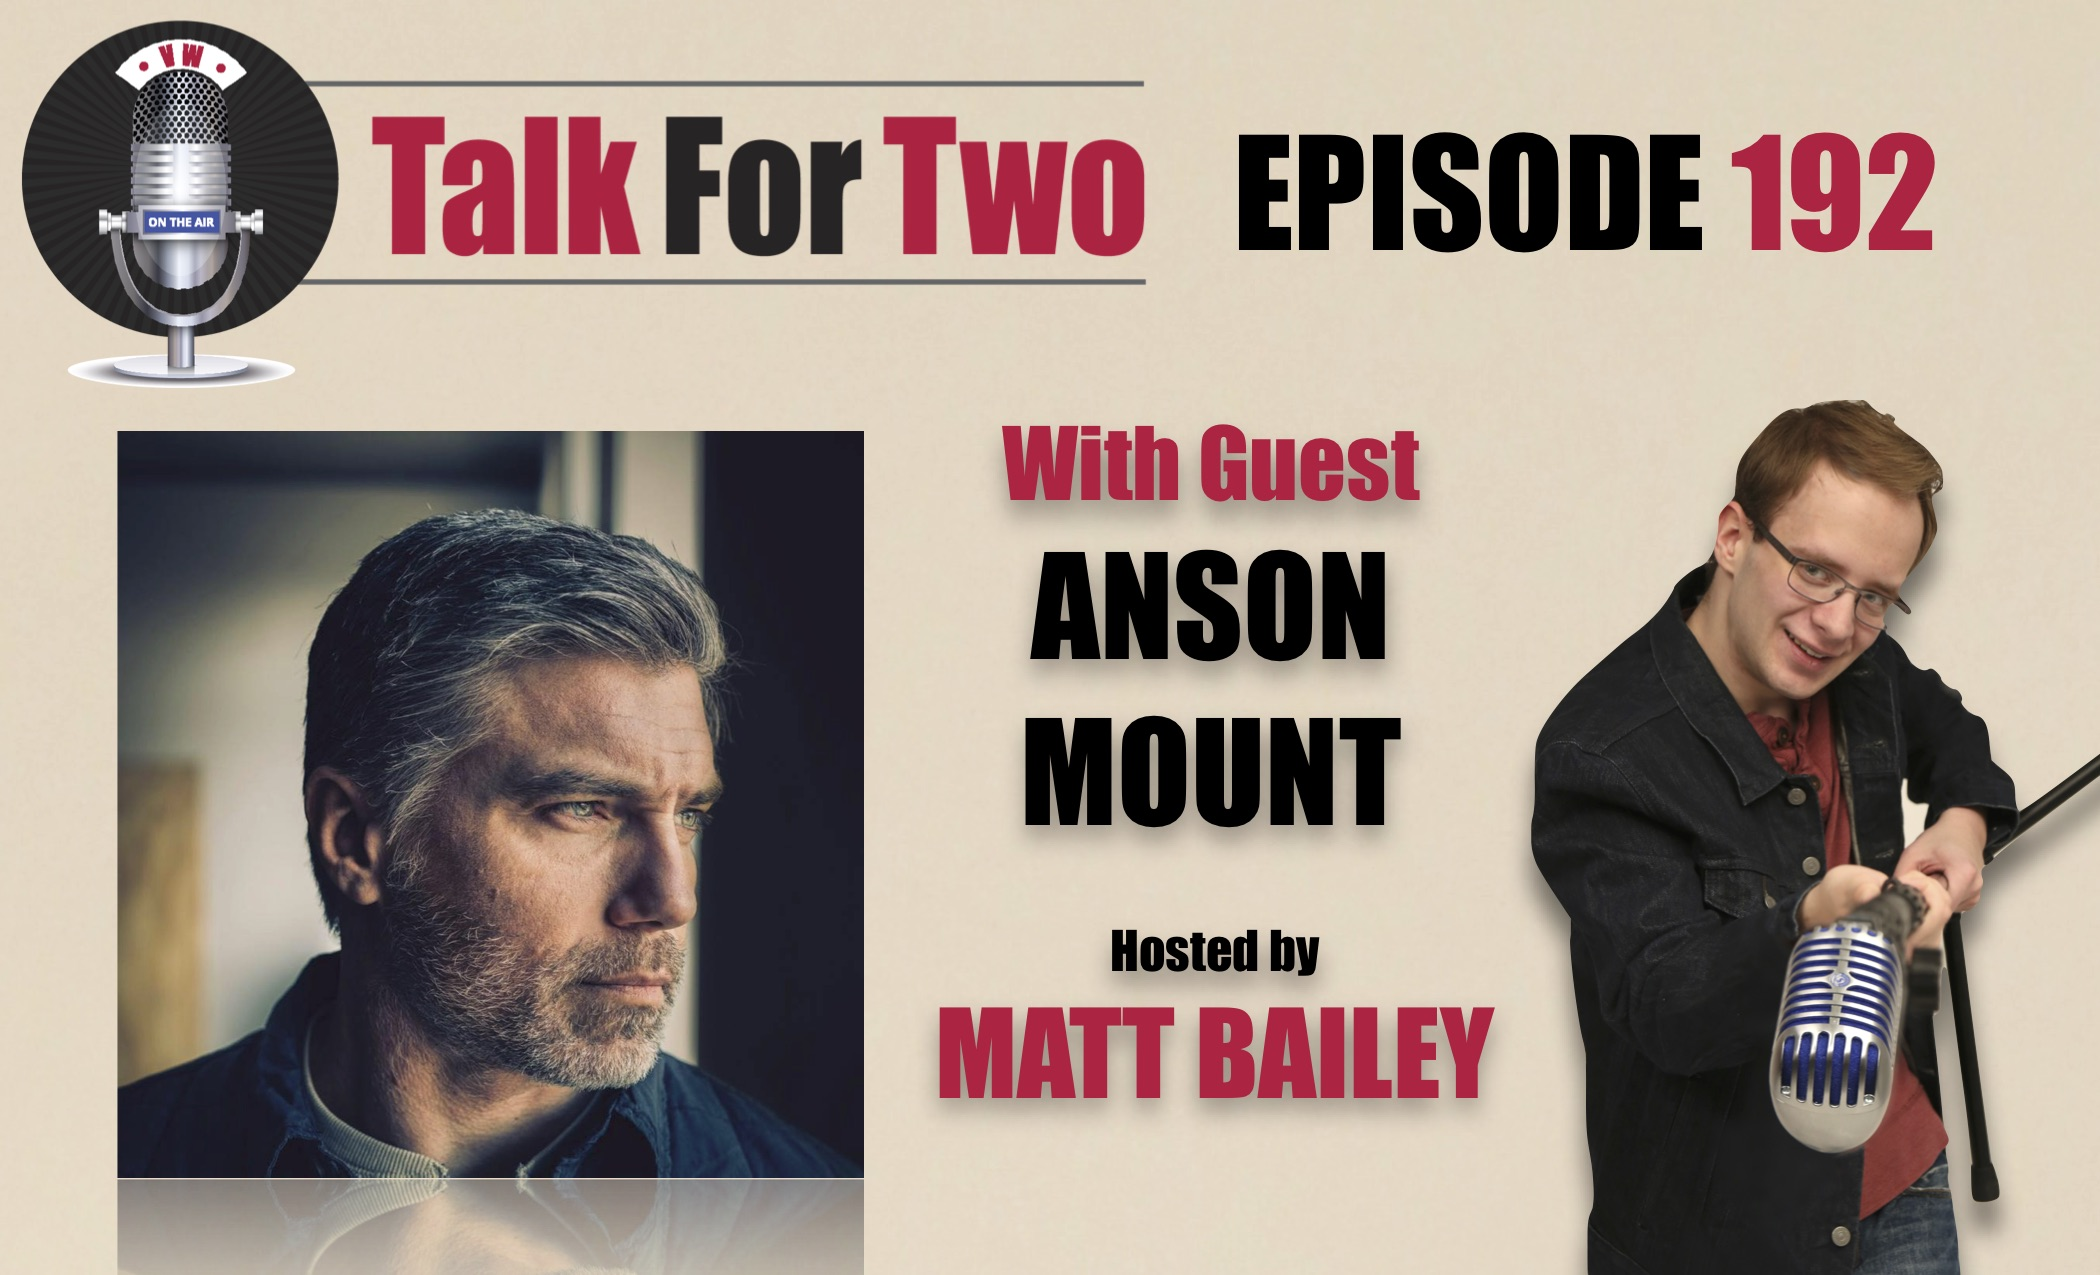 Anson_Mount, Matt_Bailey